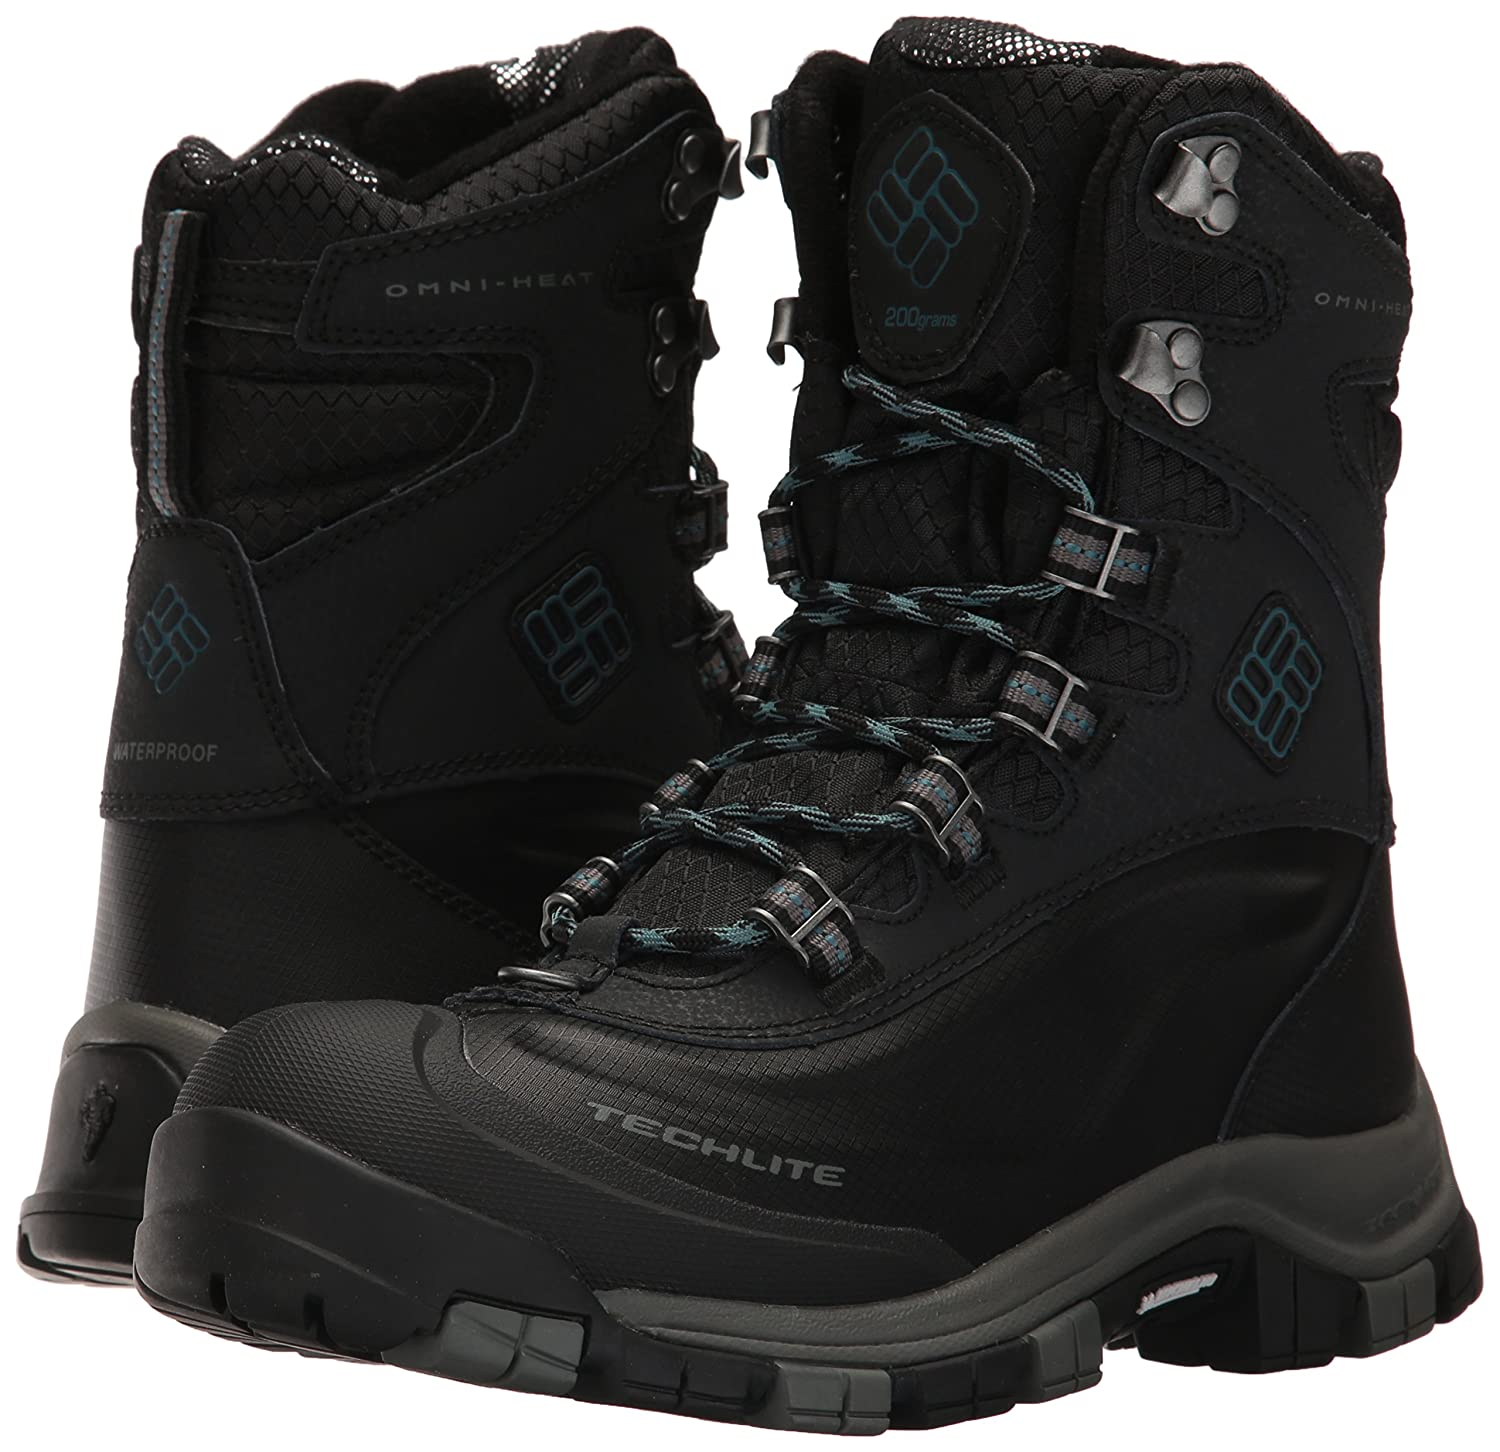 Columbia Michelin Women's Bugaboot Plus Omni-Heat Michelin Columbia Snow Boot B01NCNRE9Q 9.5 B(M) US|Black, Cloudburst 869af1